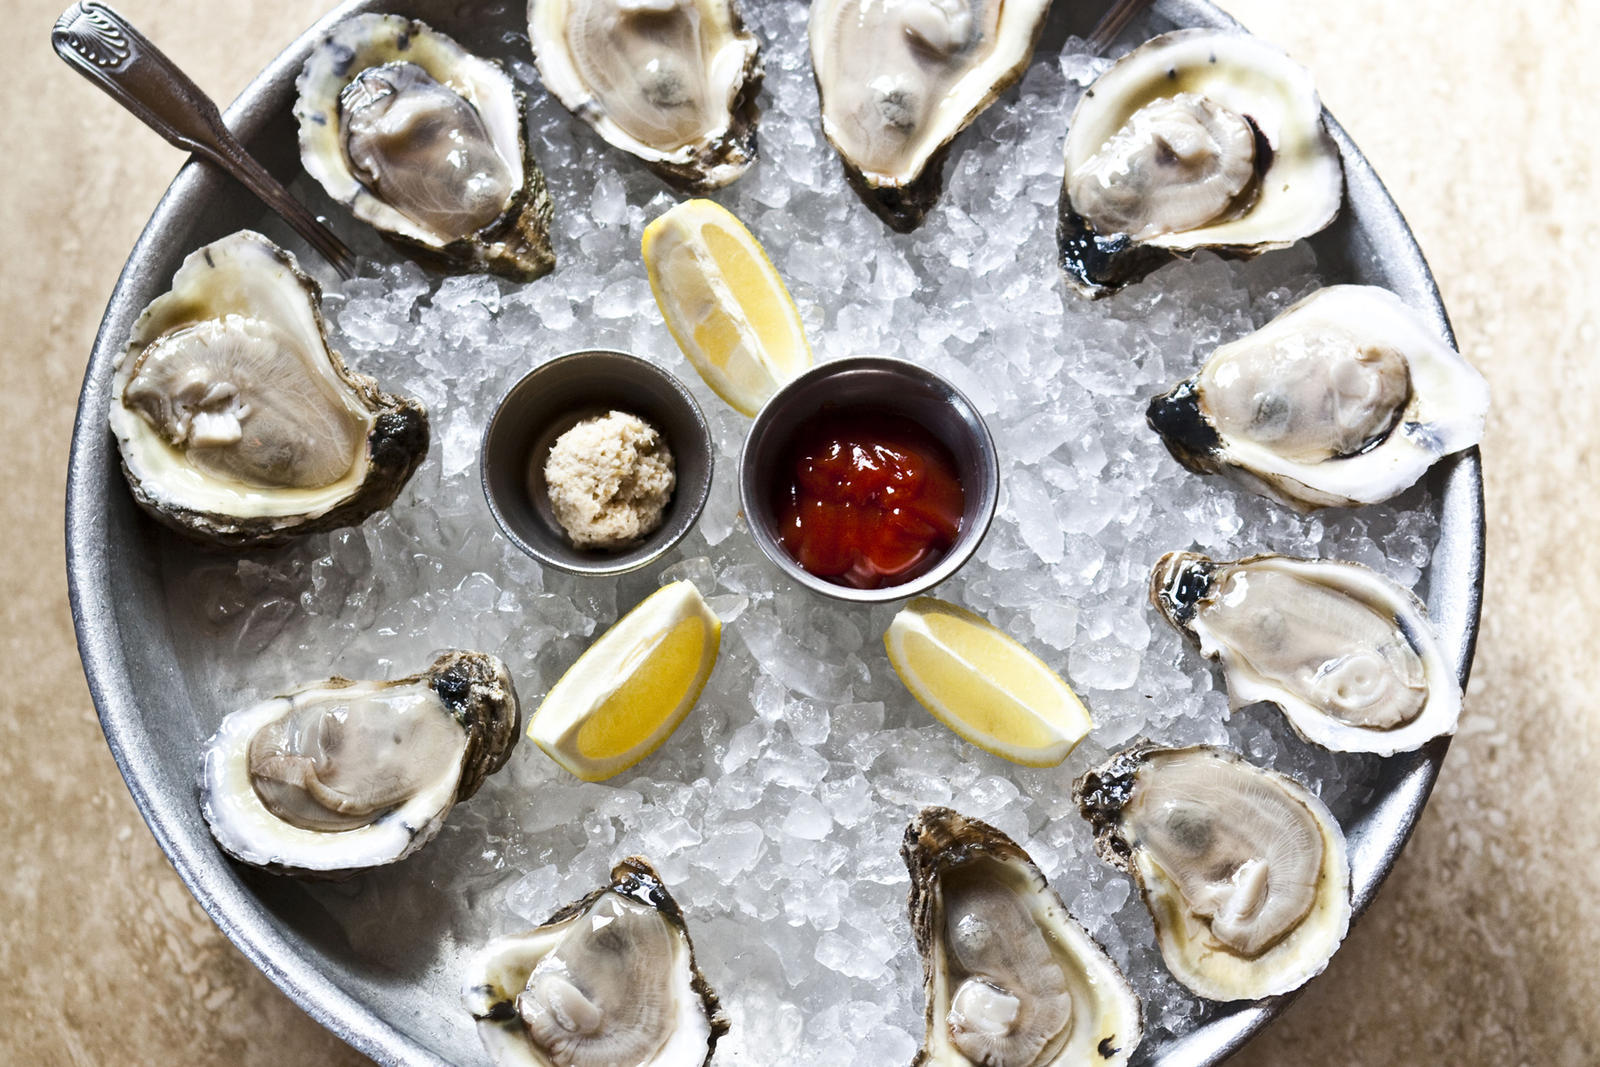 Washington Platform Oyster Festival Brings Coastal Flavors to Cincinnati